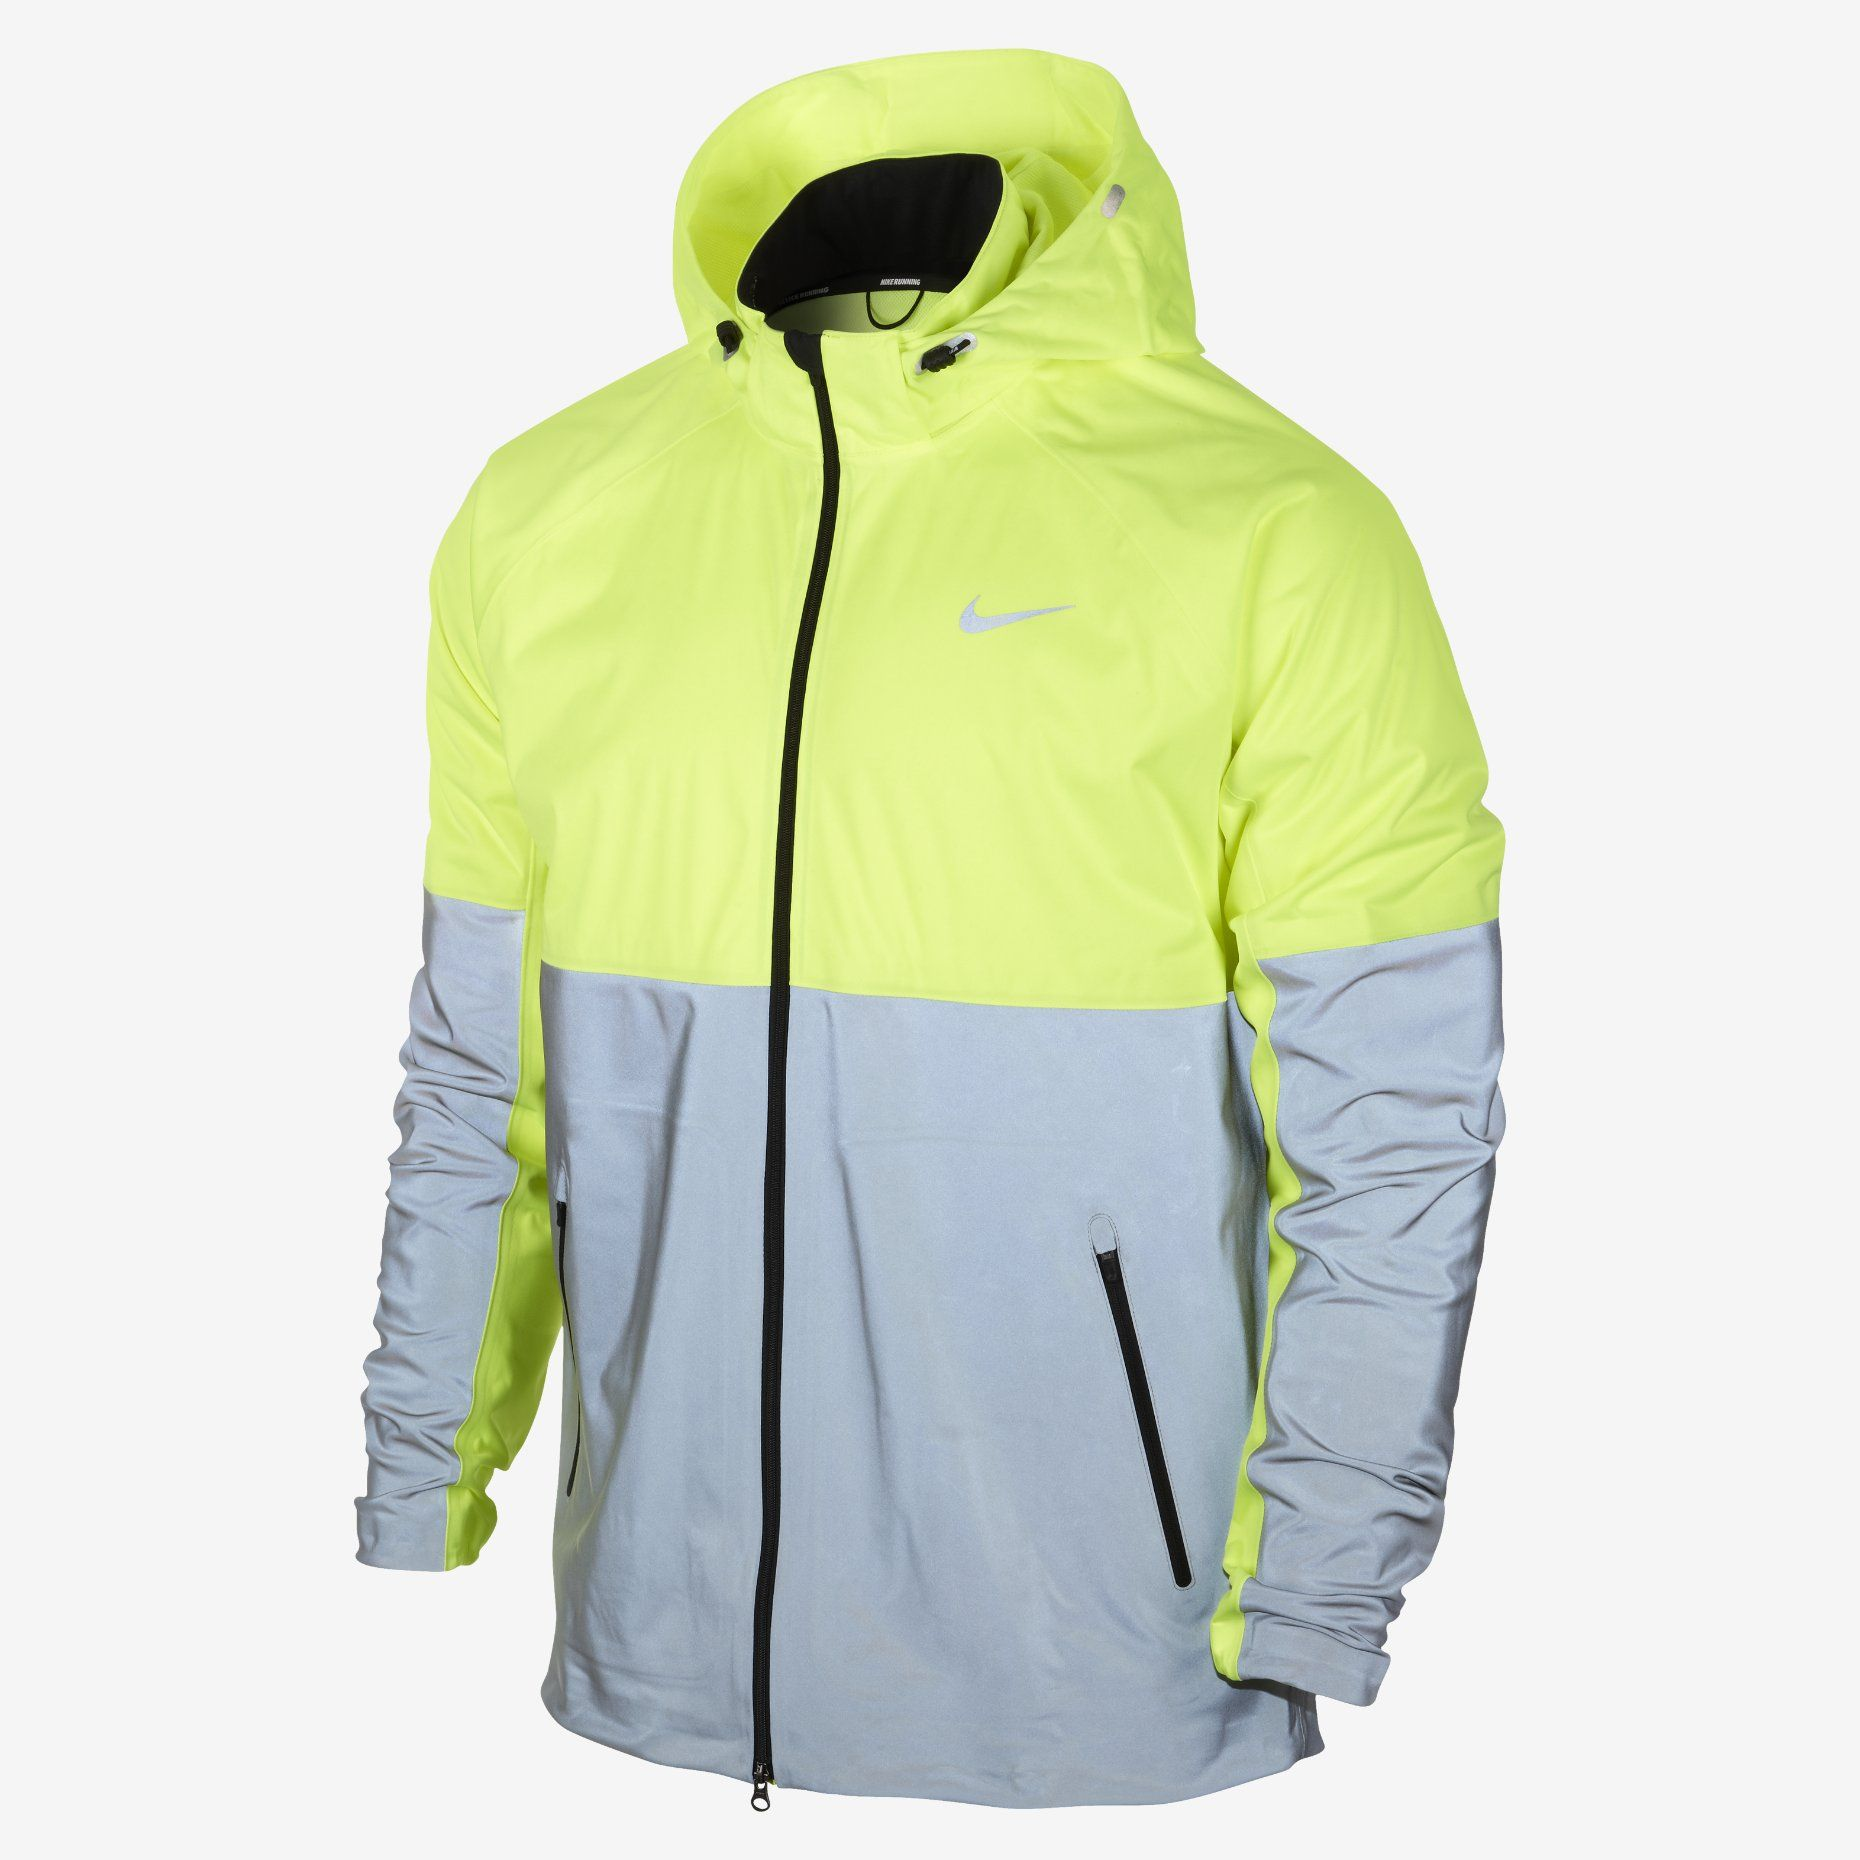 572a5f5e19f1 Nike Shield Flash Men s Running Jacket. Nike Store UK